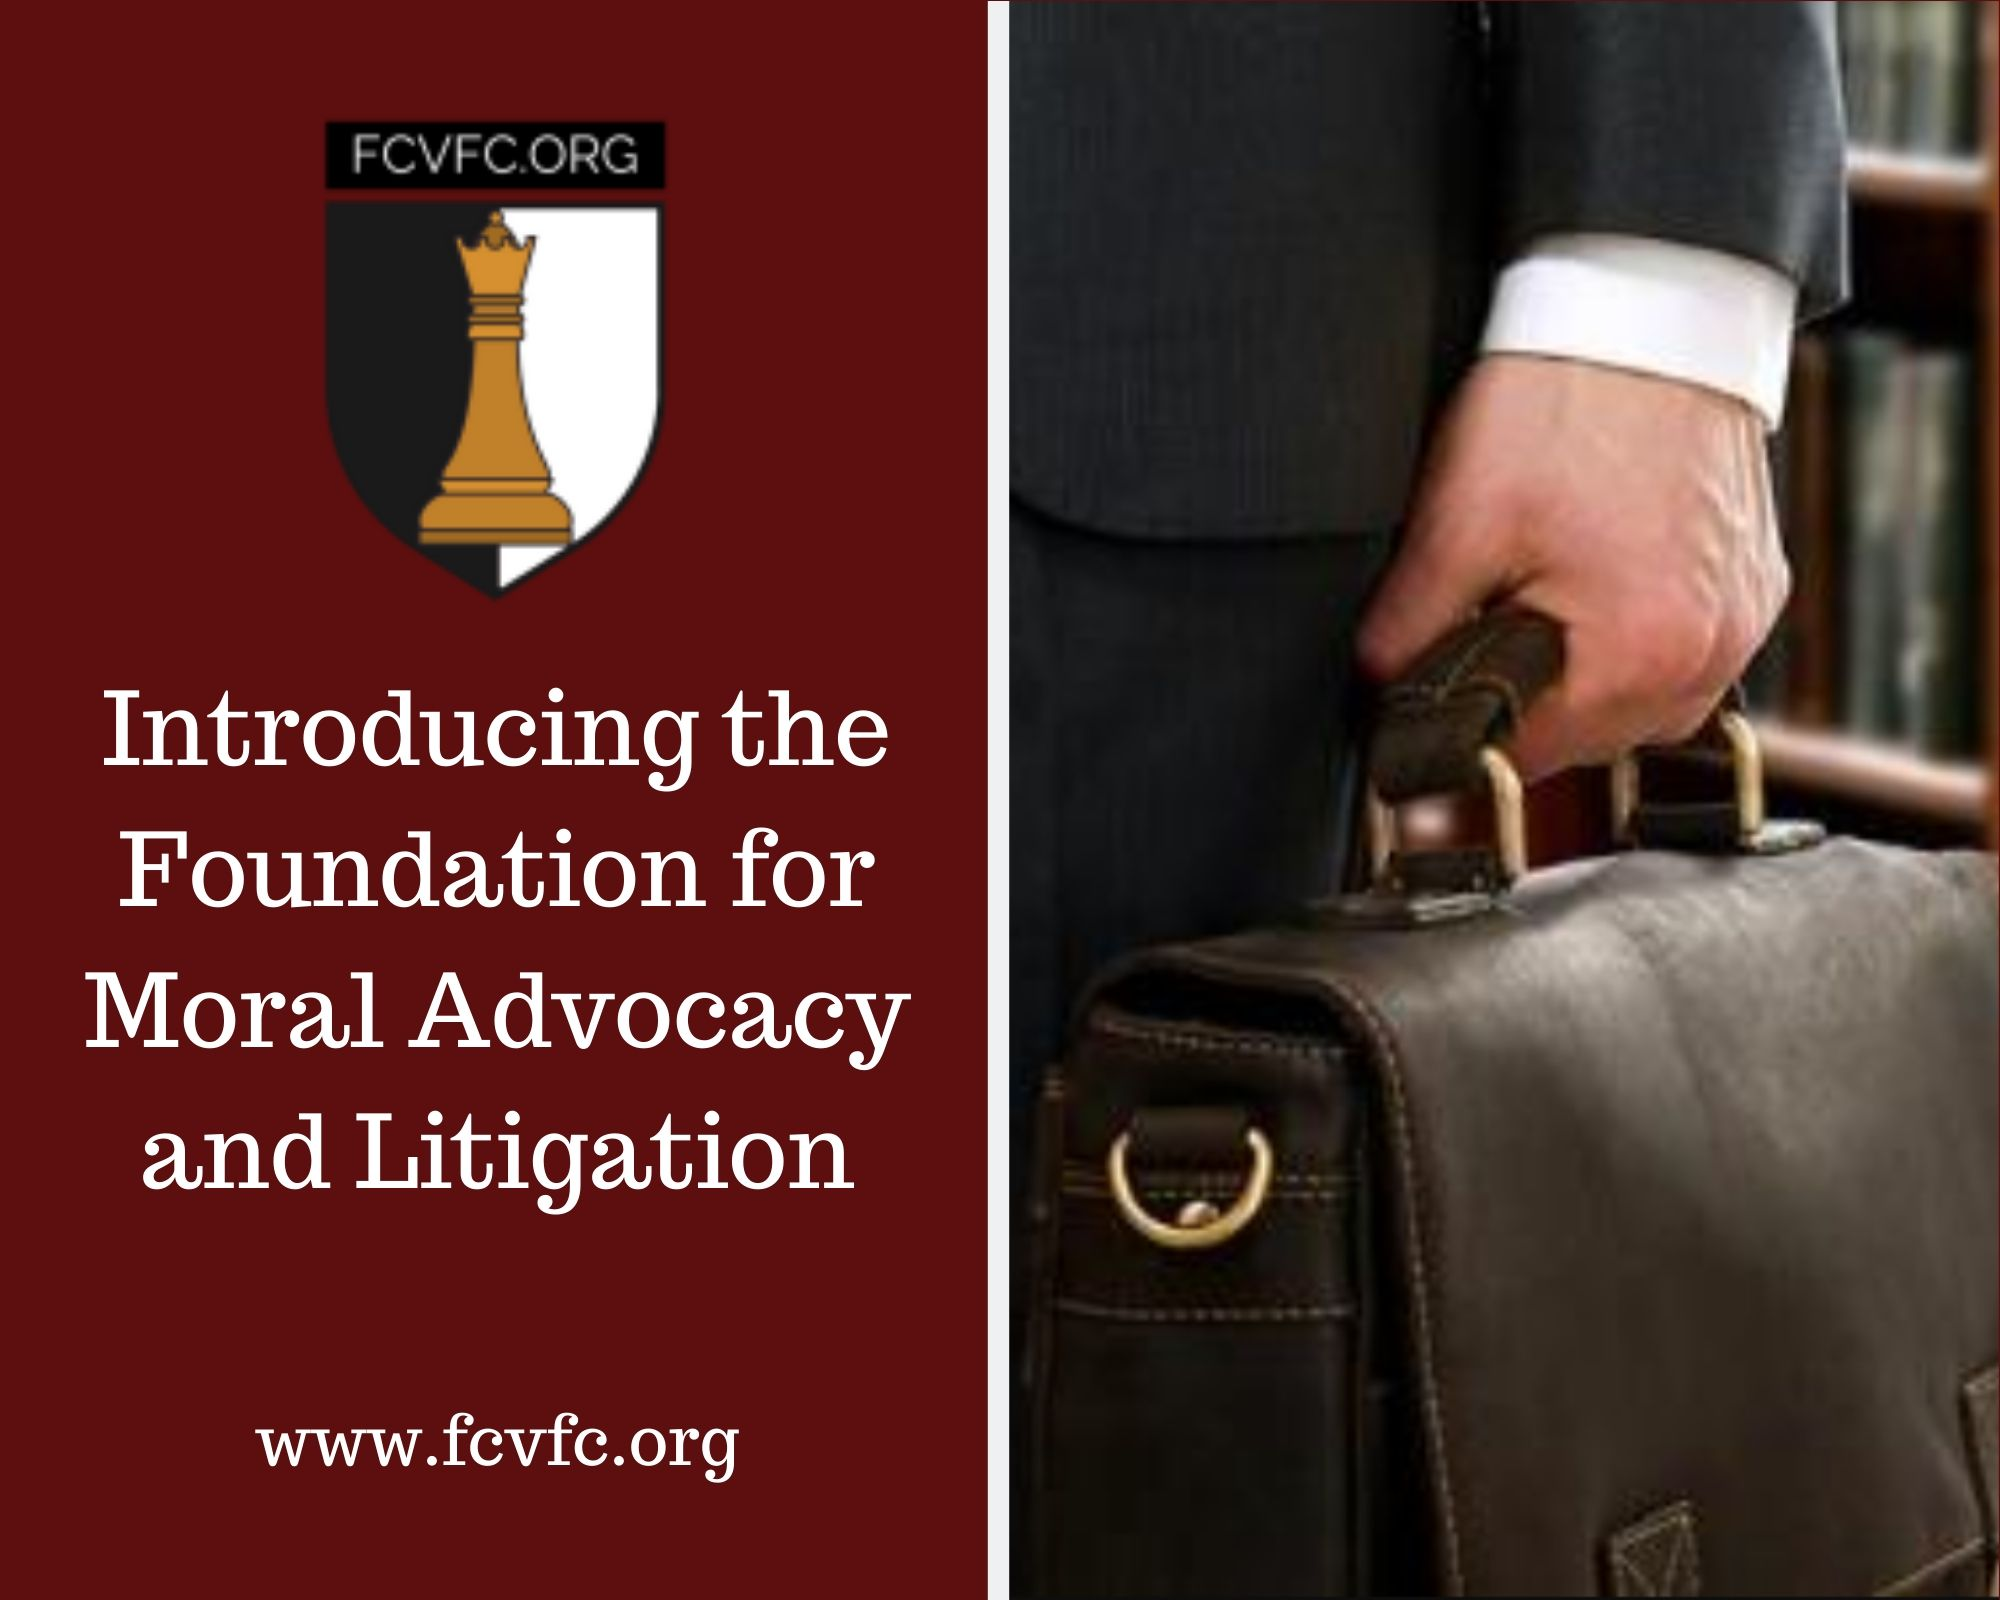 Introducing the Foundation for Moral Advocacy and Litigation